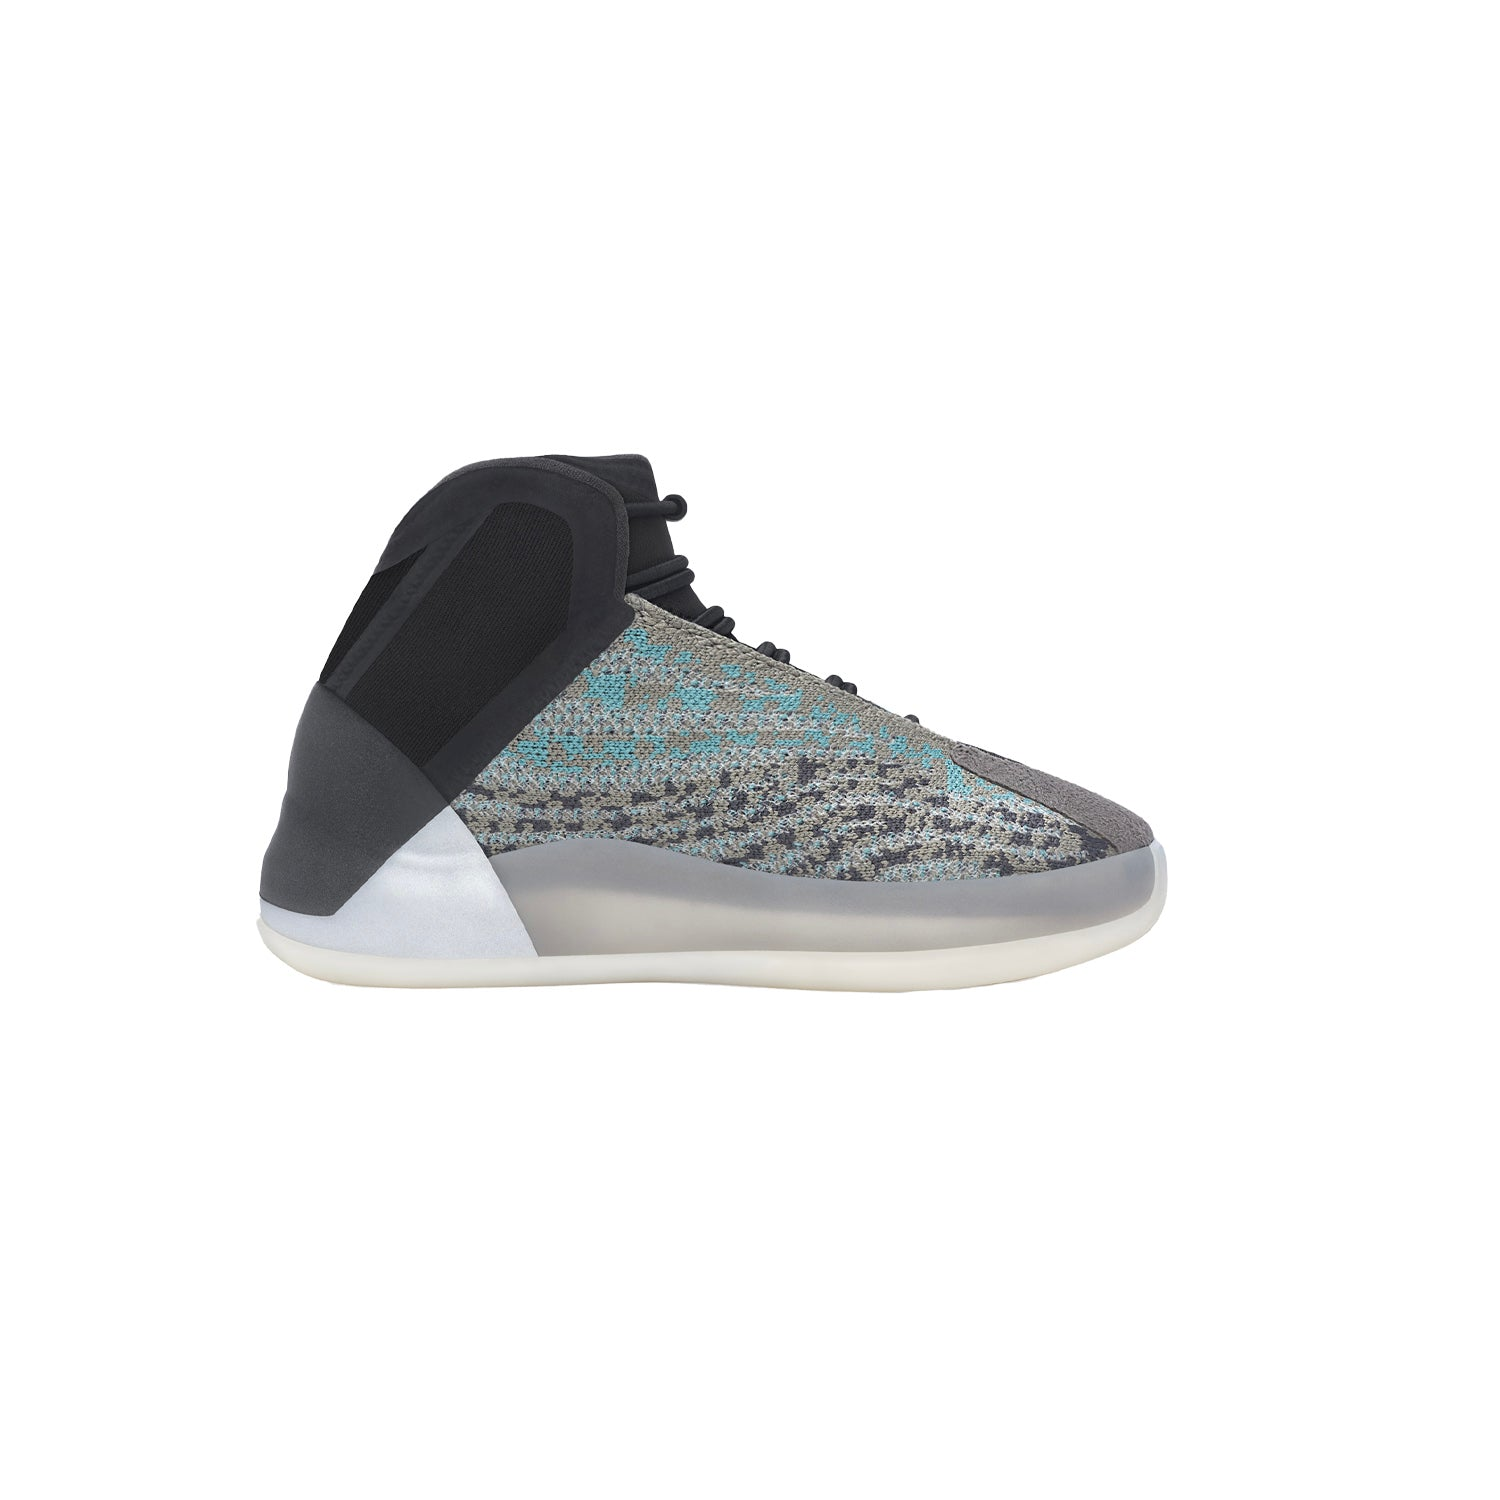 YEEZY QNTM TEAL BLUE - INFANTS